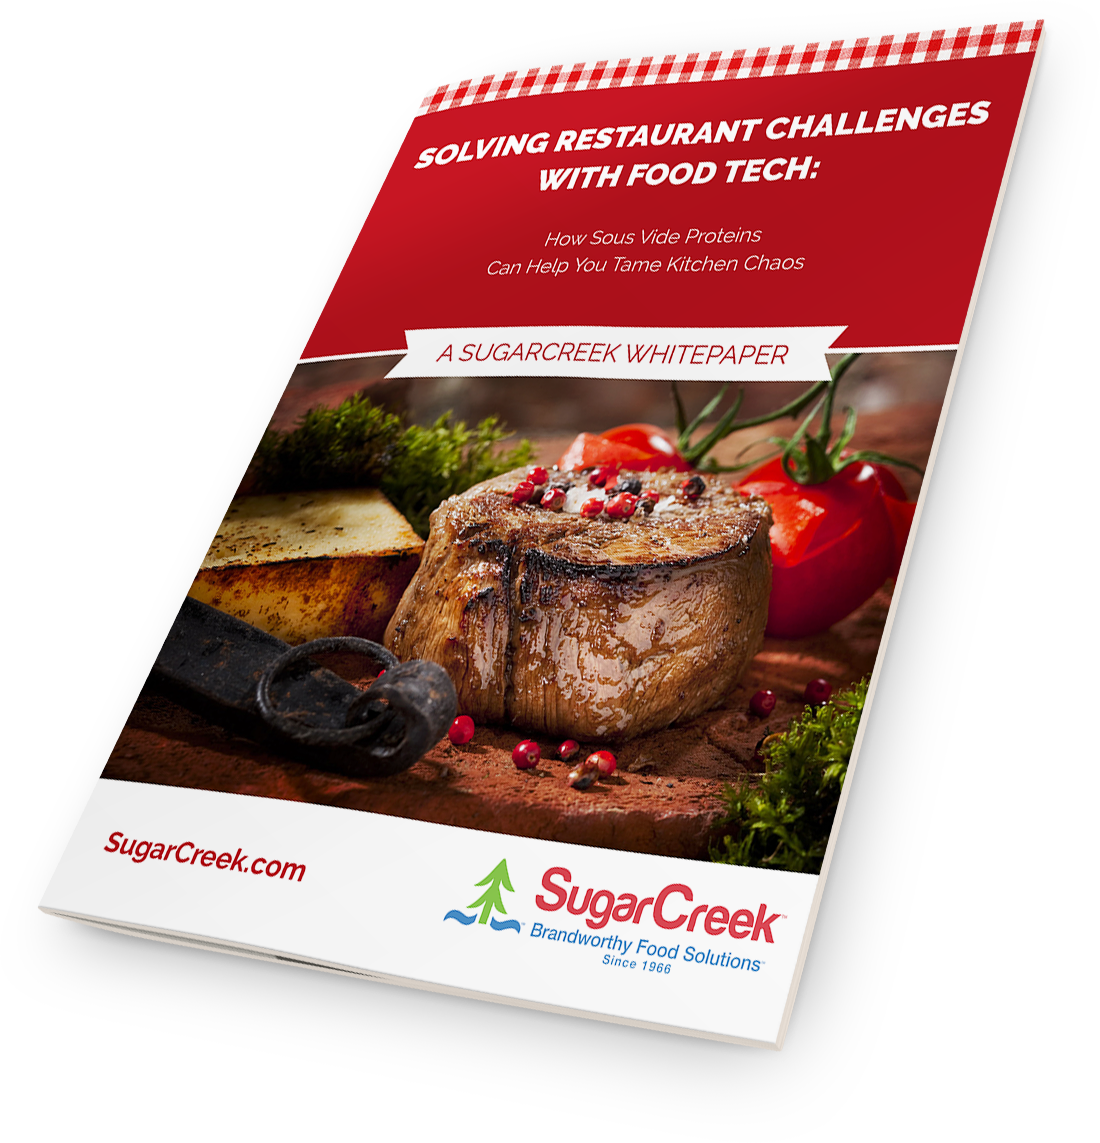 Solving Restaurant Challenges with Food Tech: How Sous Vide Proteins Can Help You Tame Kitchen Chaos Whitepaper